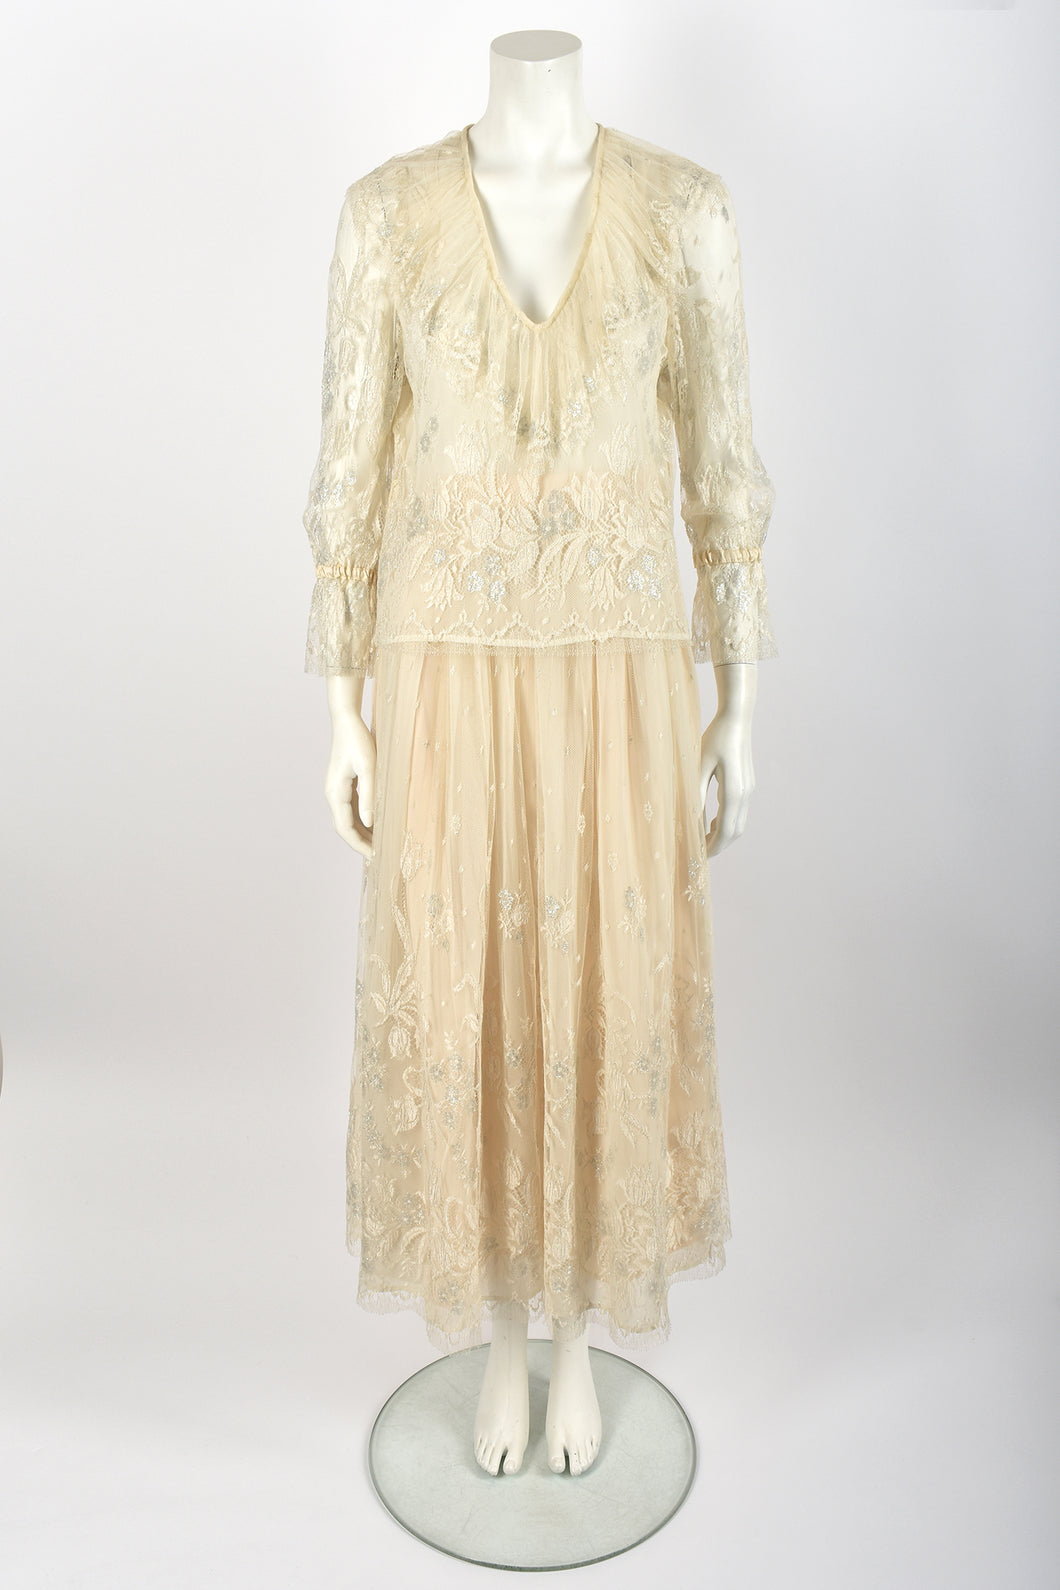 CAROLINE CHARLES lace blouse and skirt set / S-M